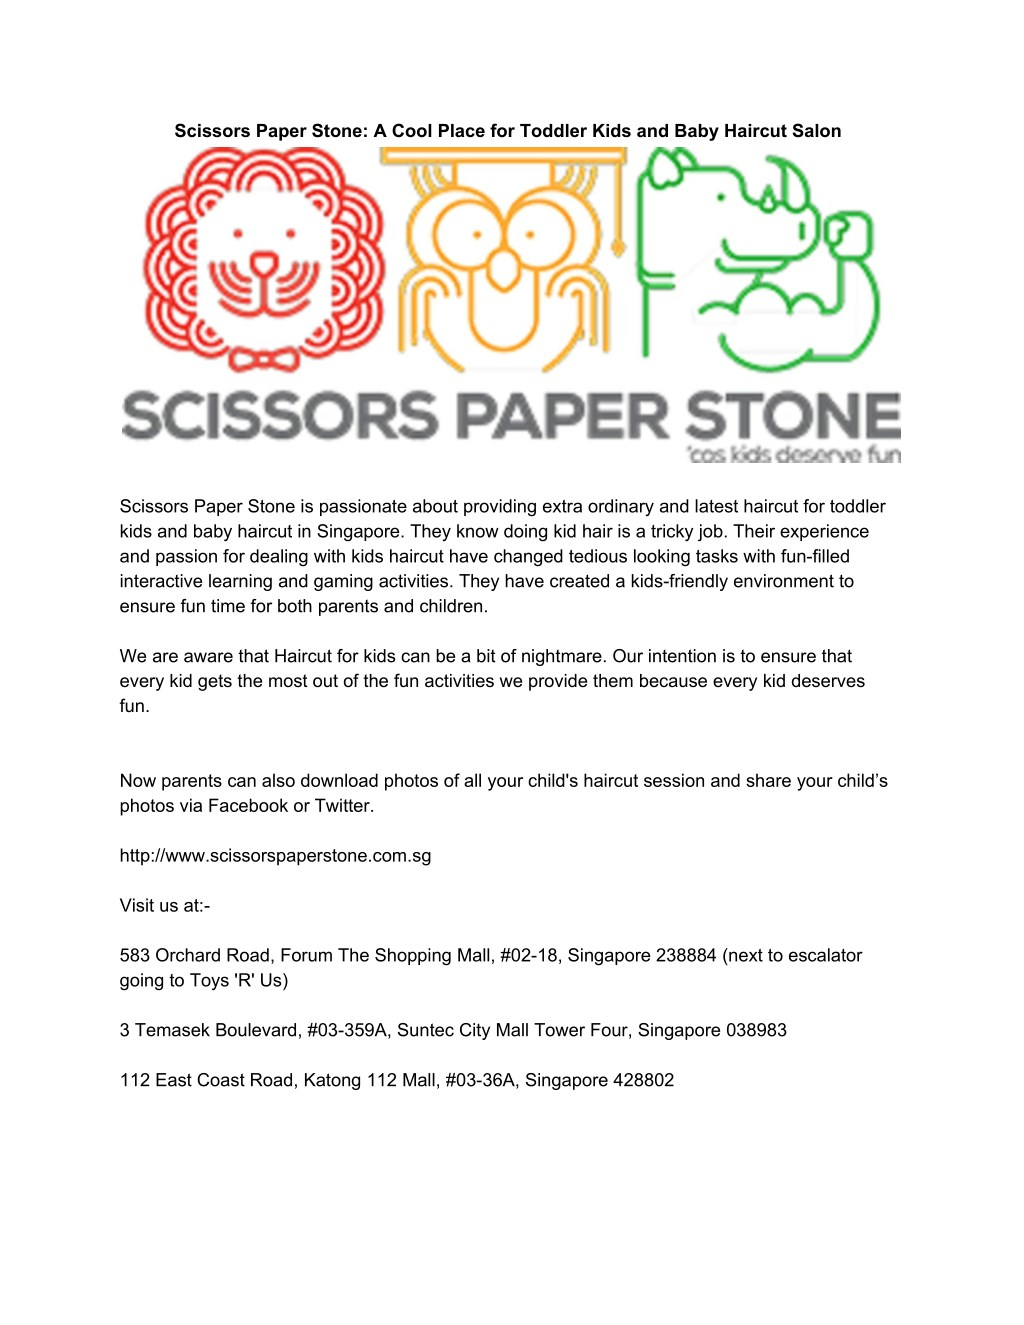 Ppt Scissors Paper Stone A Cool Place For Toddler Kids And Baby